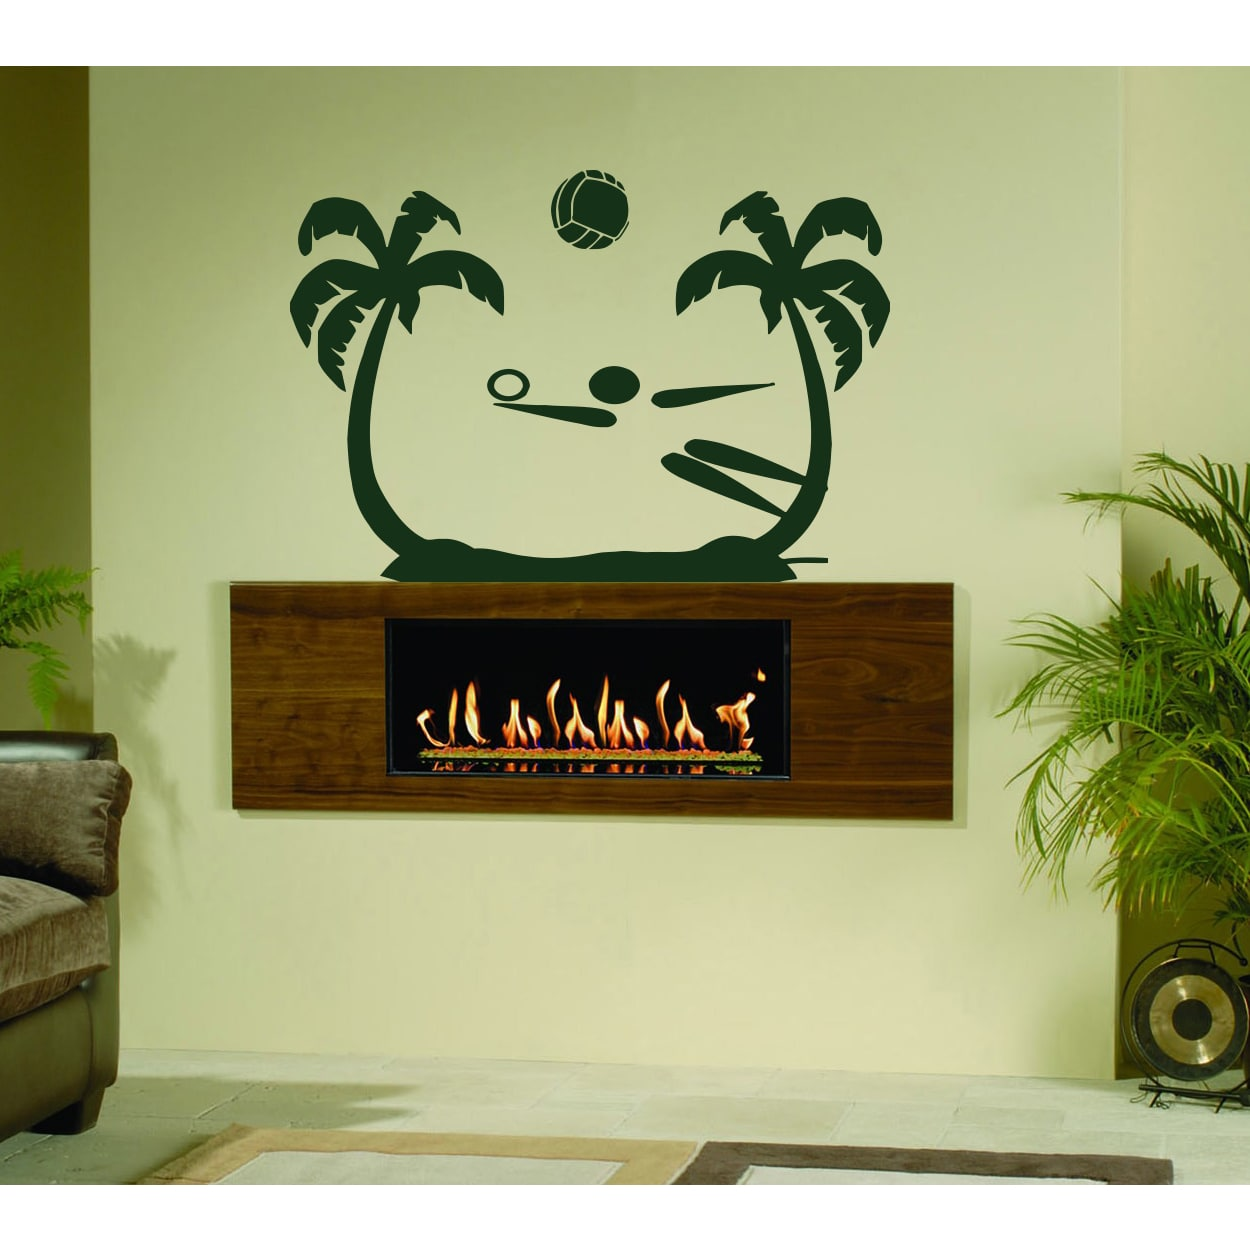 Stickalz llc The game of volleyball on the beach Wall Art Sticker ...